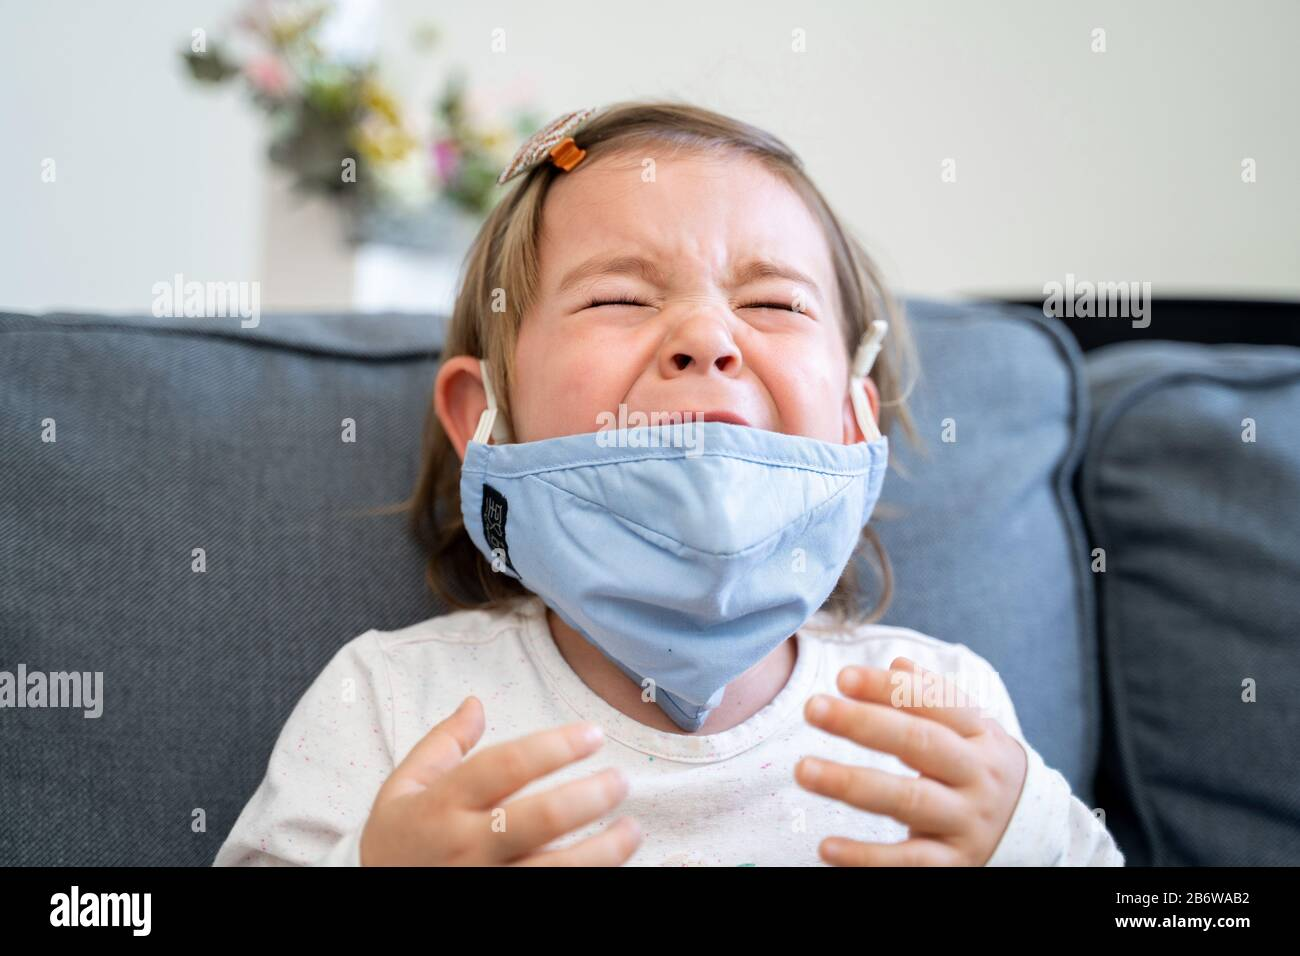 toddler face mask virus